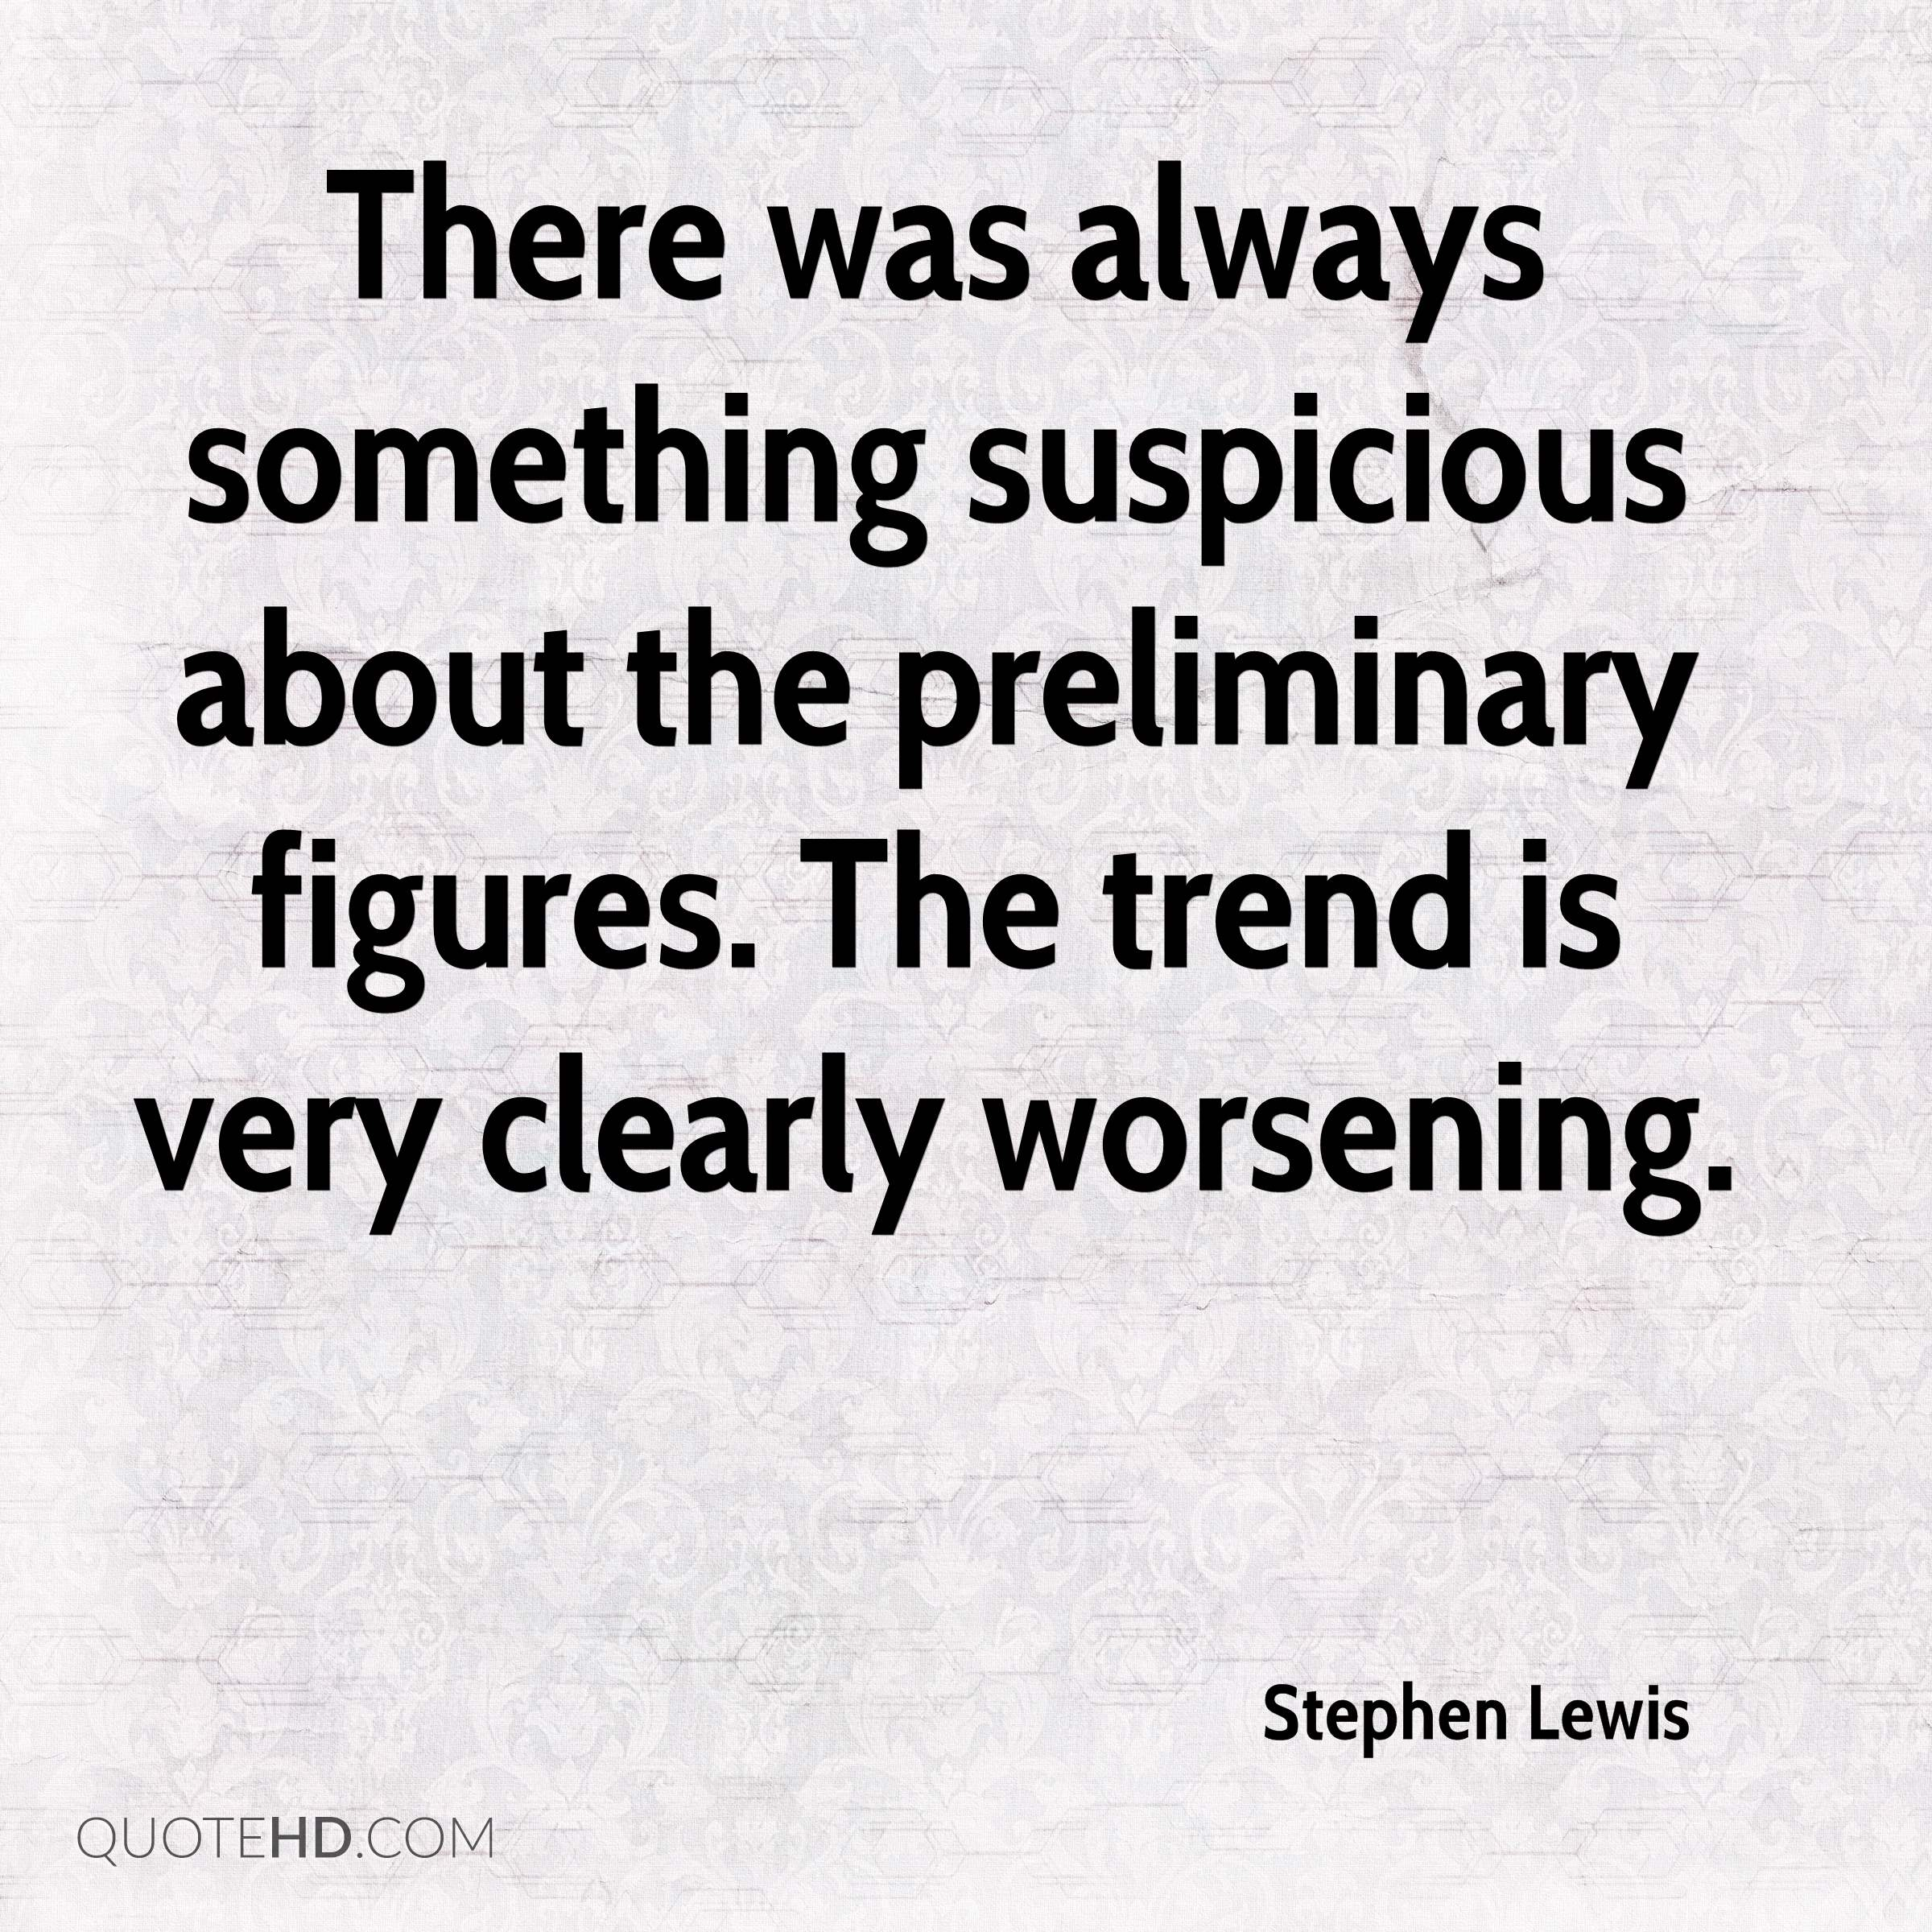 There was always something suspicious about the preliminary figures. The trend is very clearly worsening.